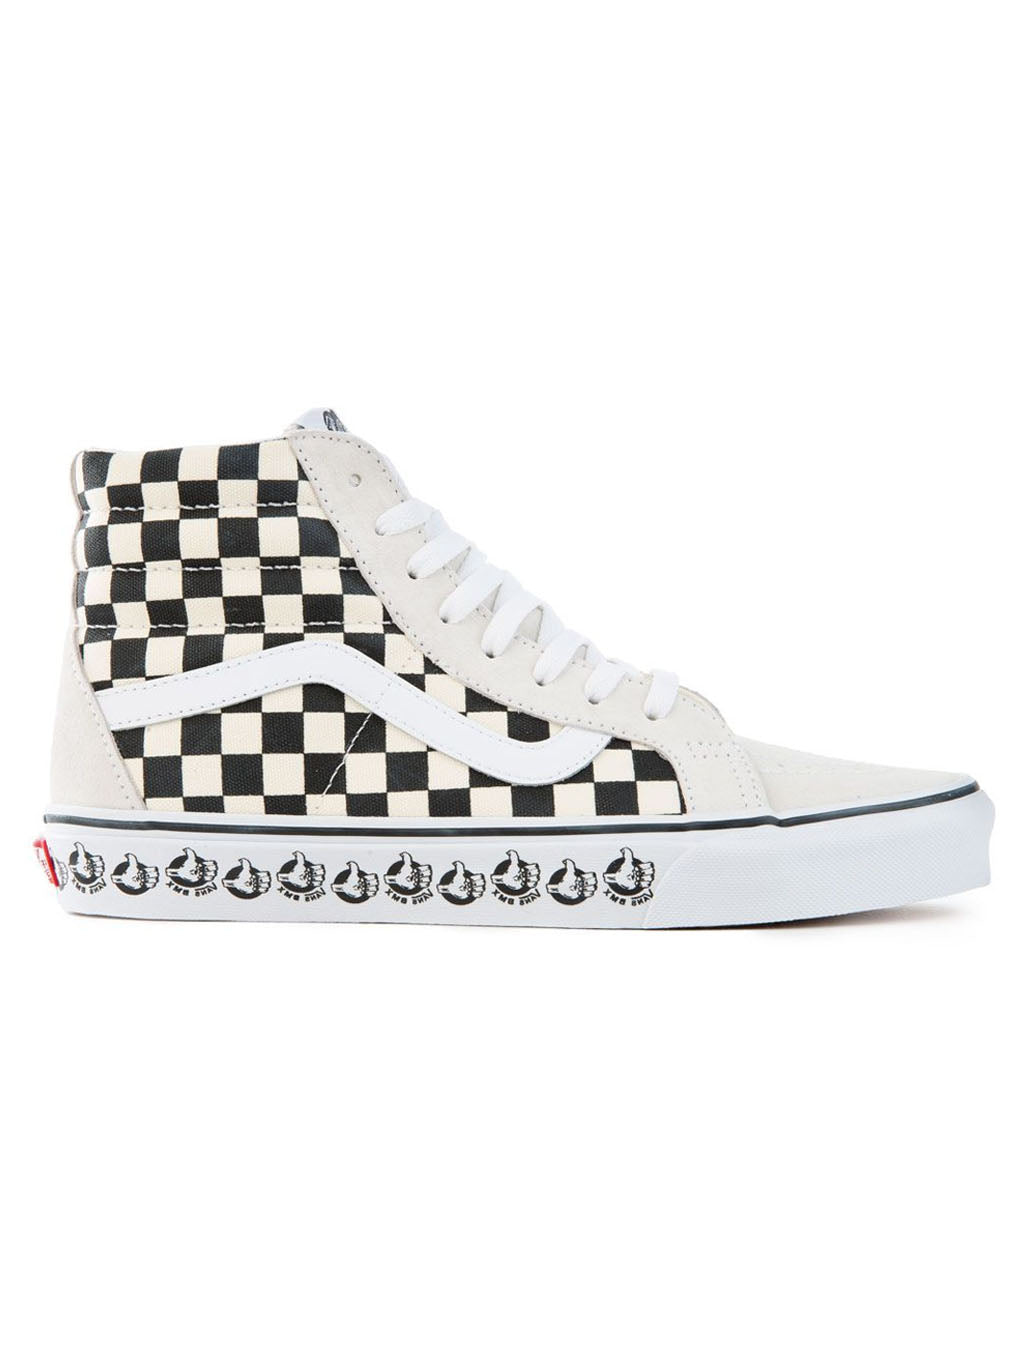 White & Black SK8-Hi Reissue Bmx Shoes